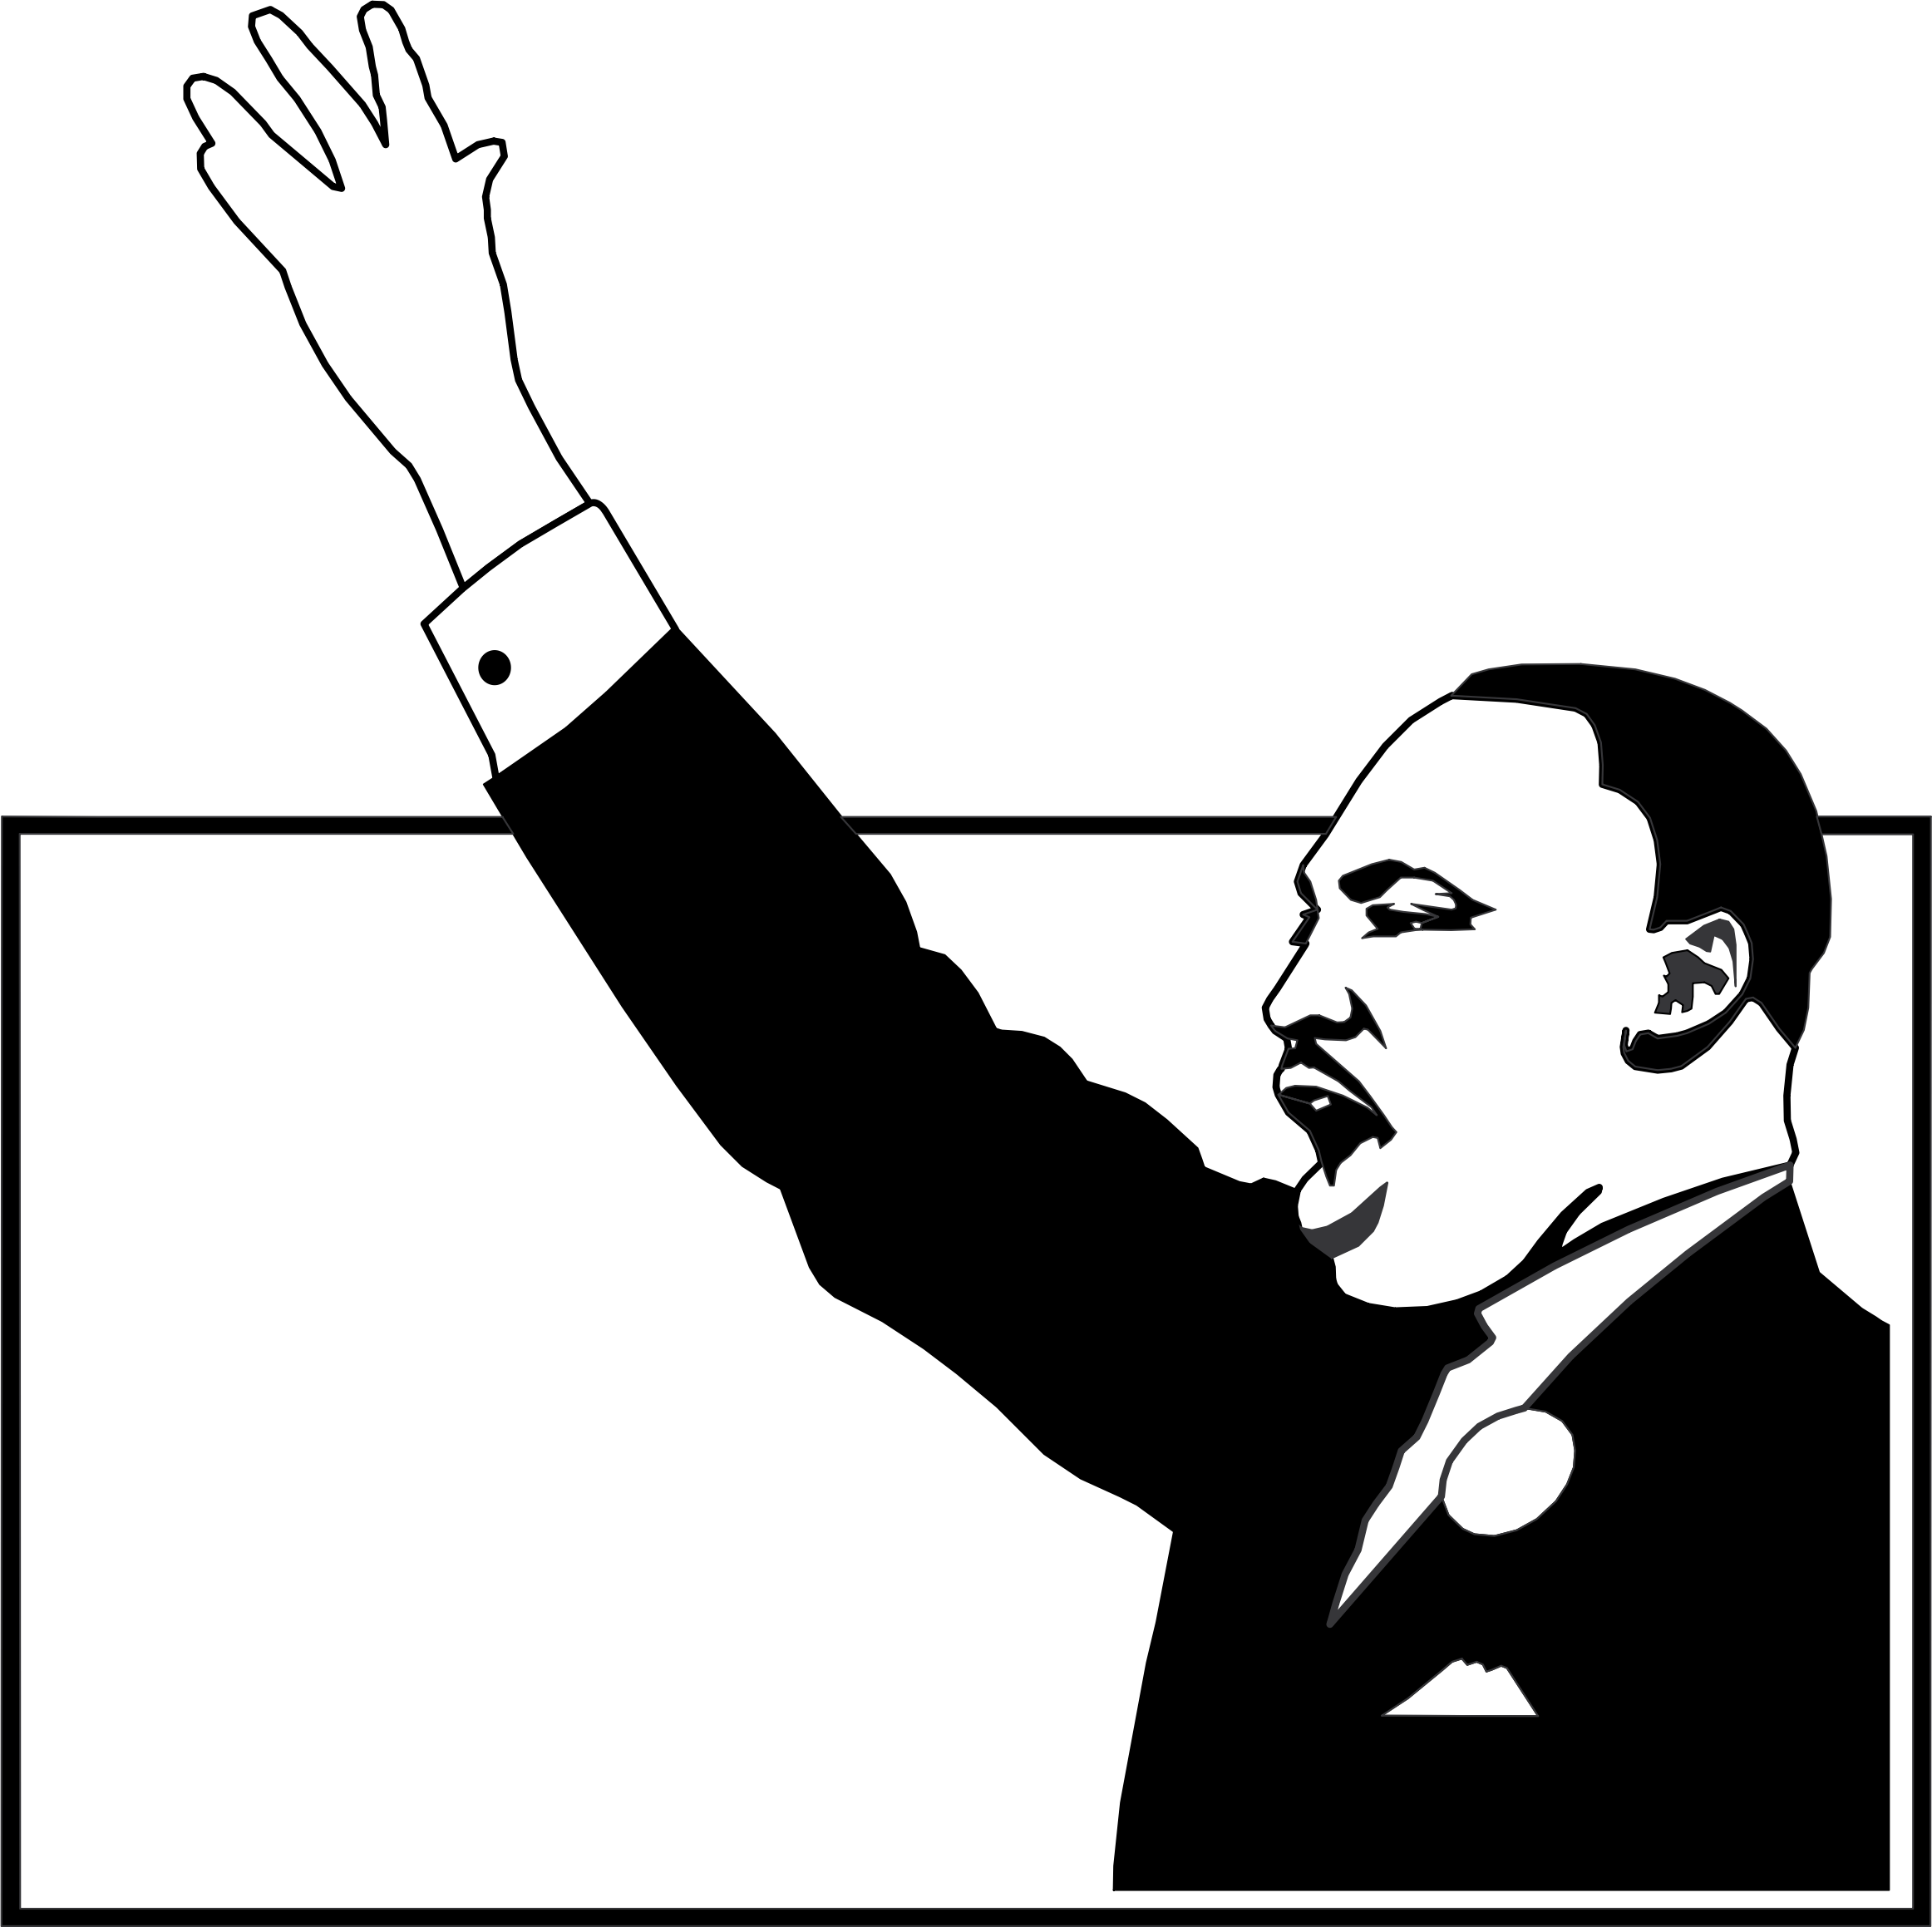 Mlk clipart black and white. Martin luther king big